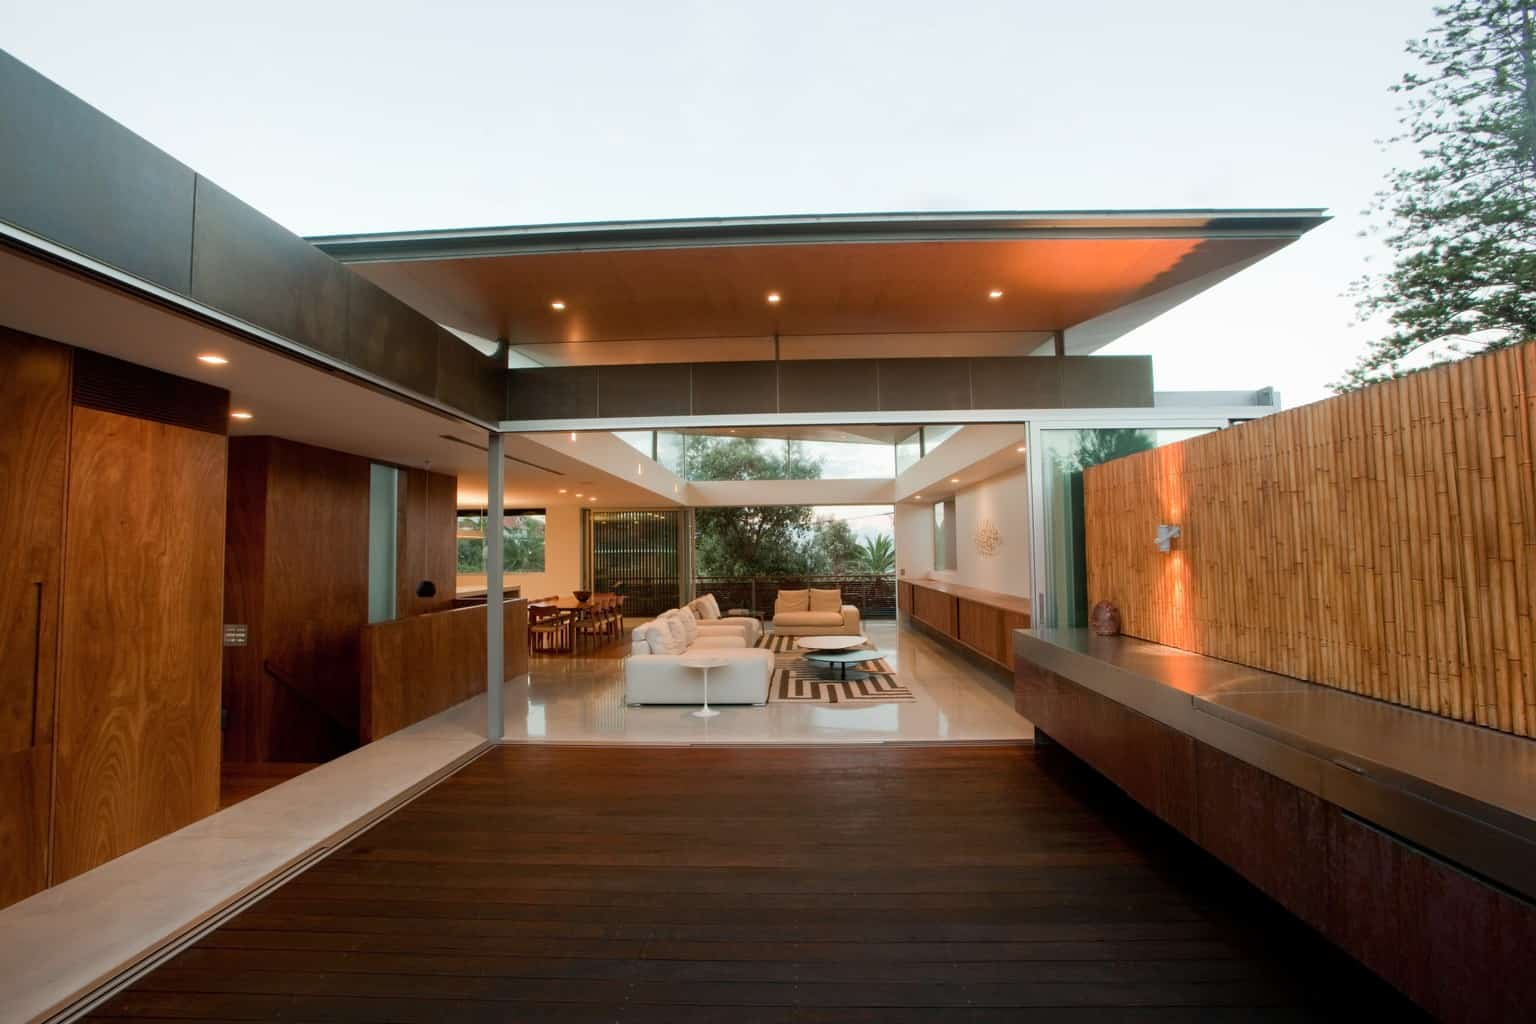 Living room and deck with modern asian design, modern asian architecture, Virginia Kerridge, White Rock